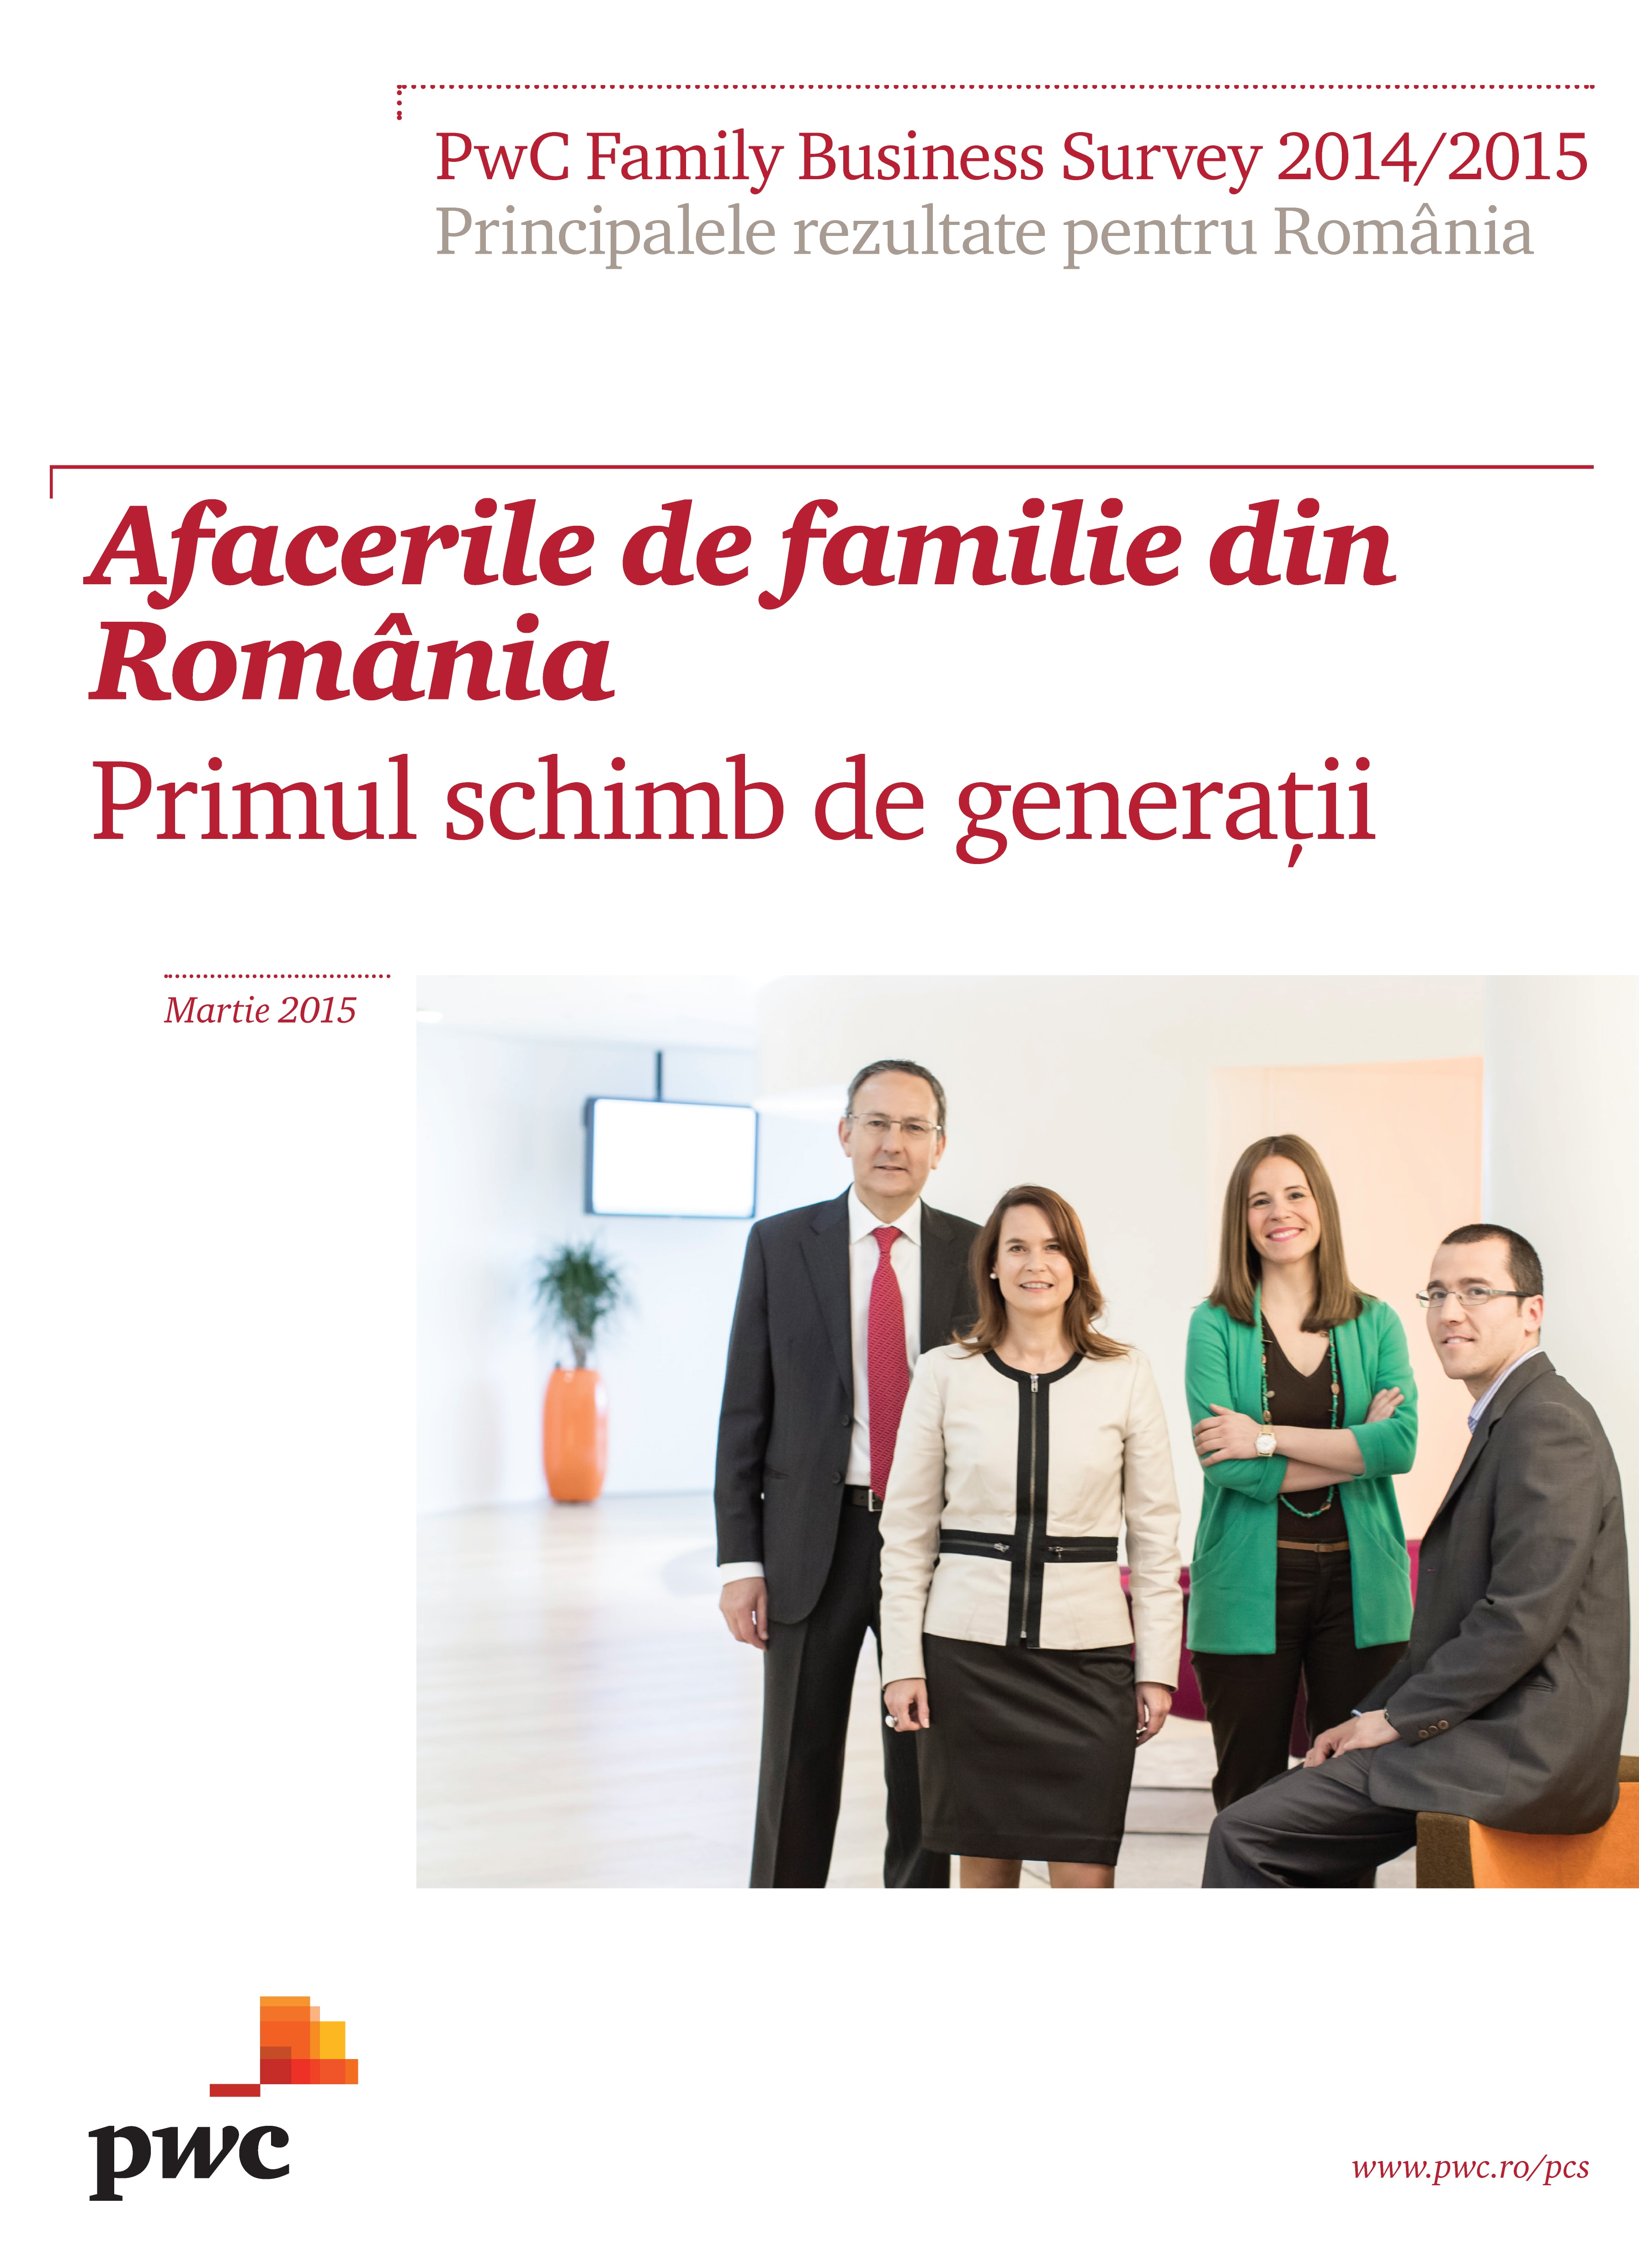 PwC Family Business Survey 2014/2015